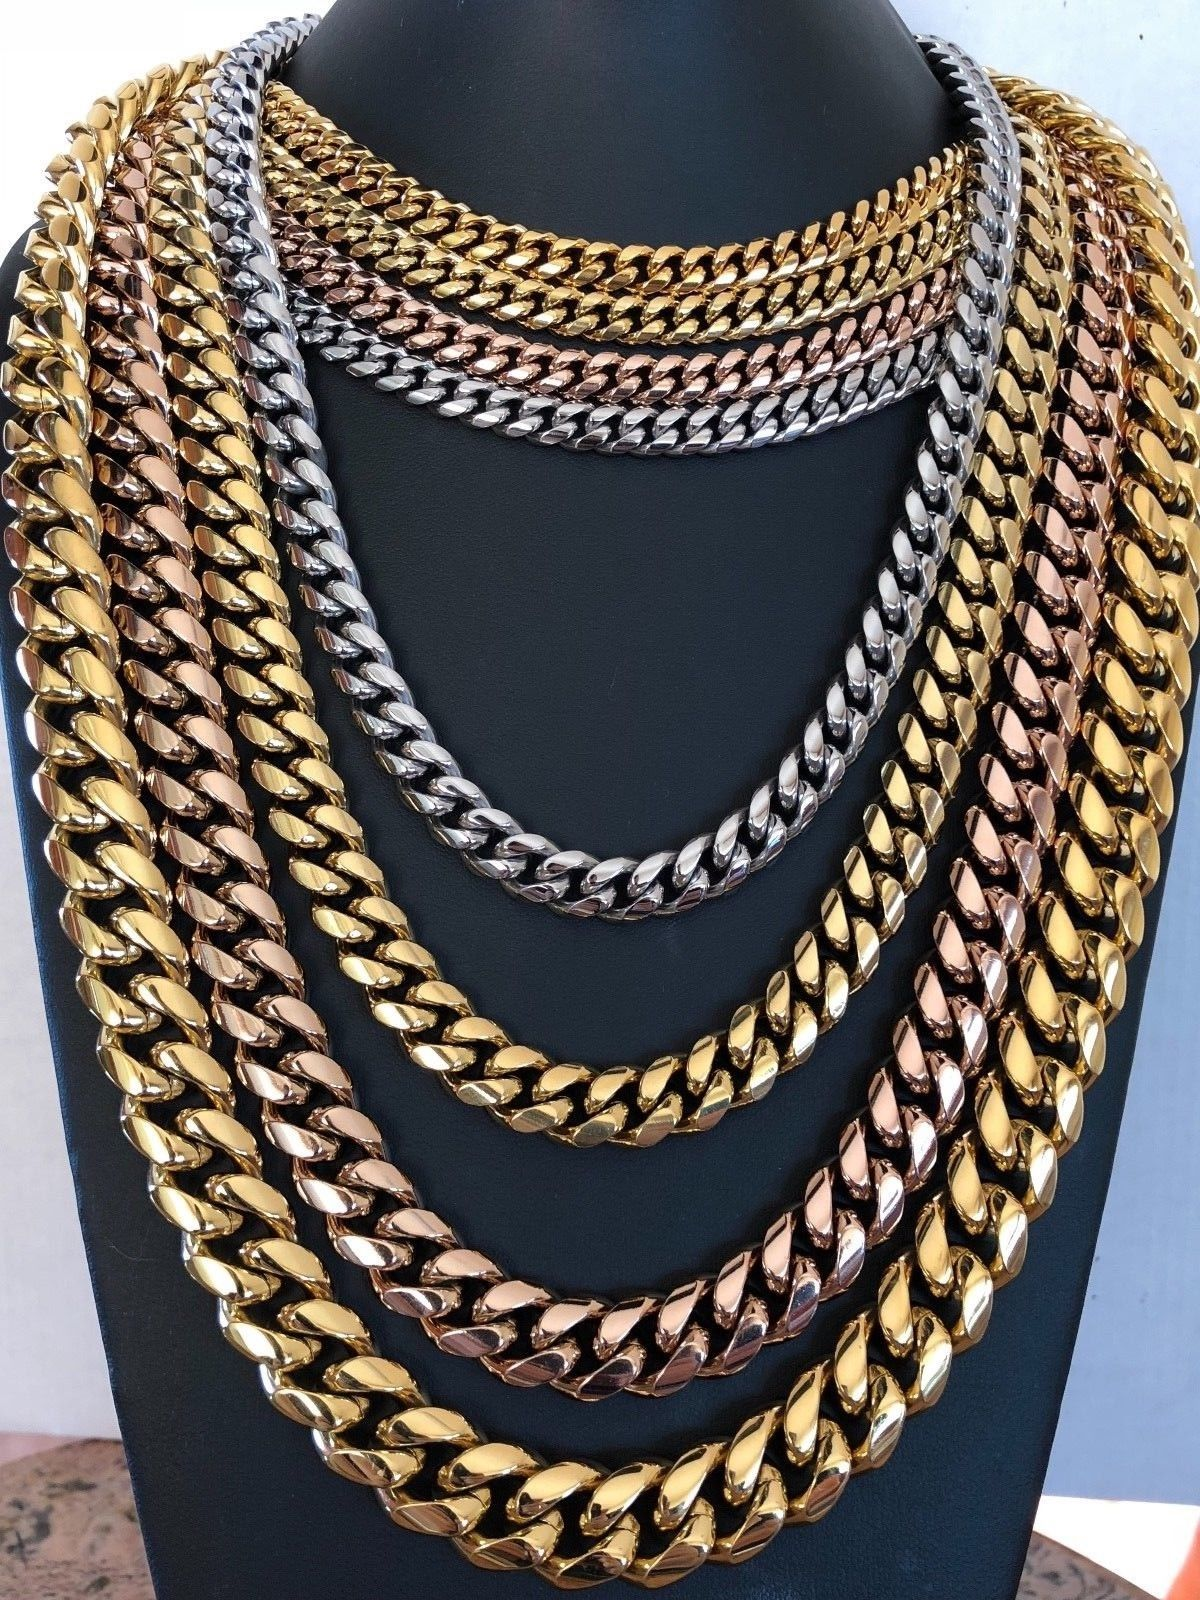 738c96dbd9391 Men's Miami Cuban Link Chain 14k 18k Gold Plated Stainless Steel ...